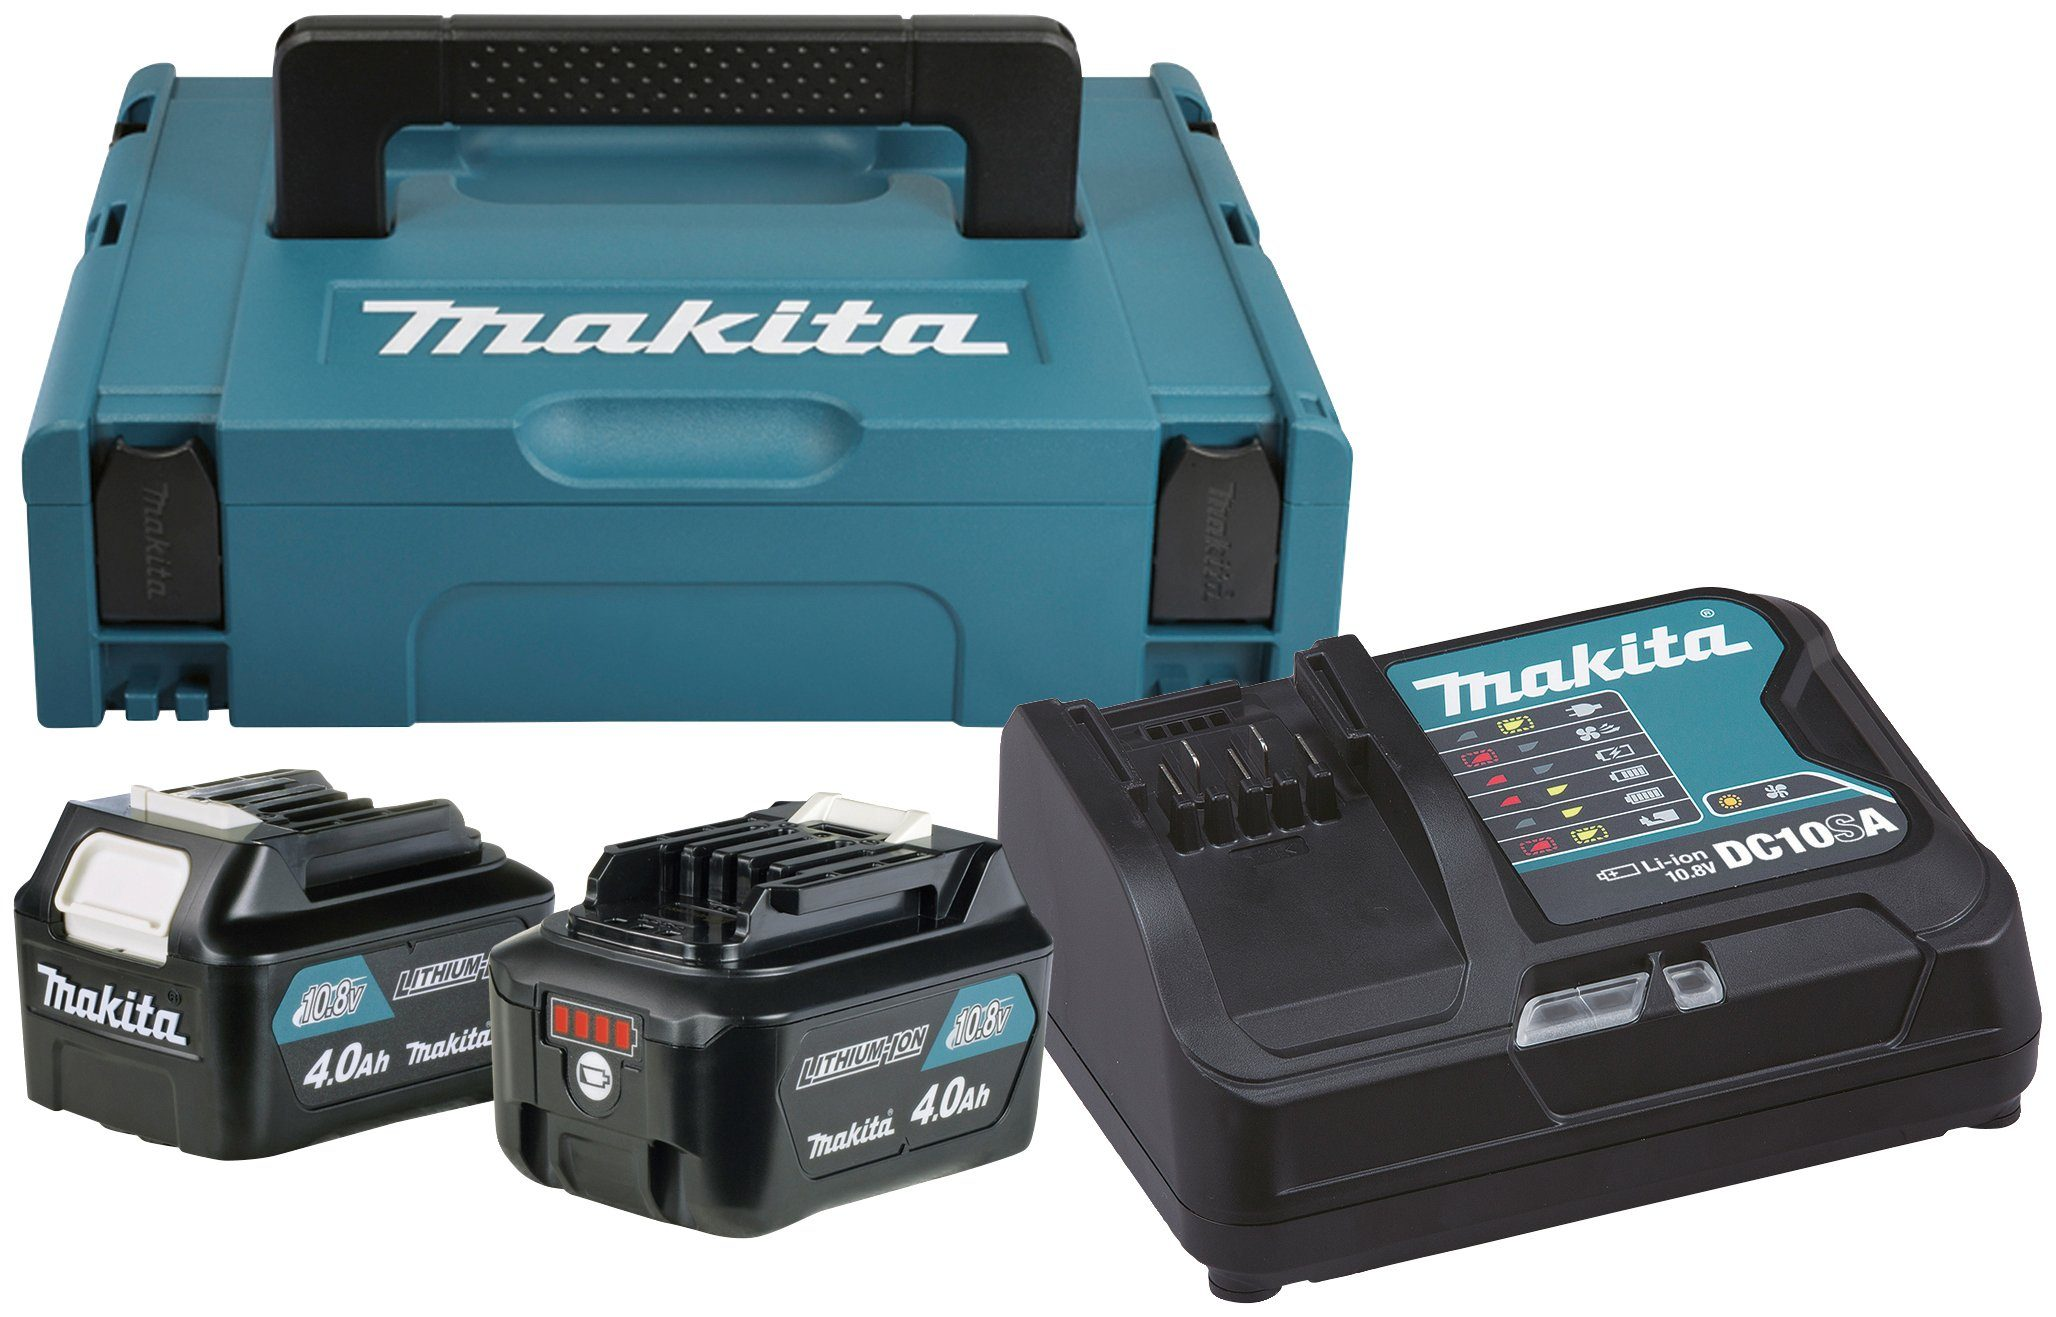 Makita online shop otto